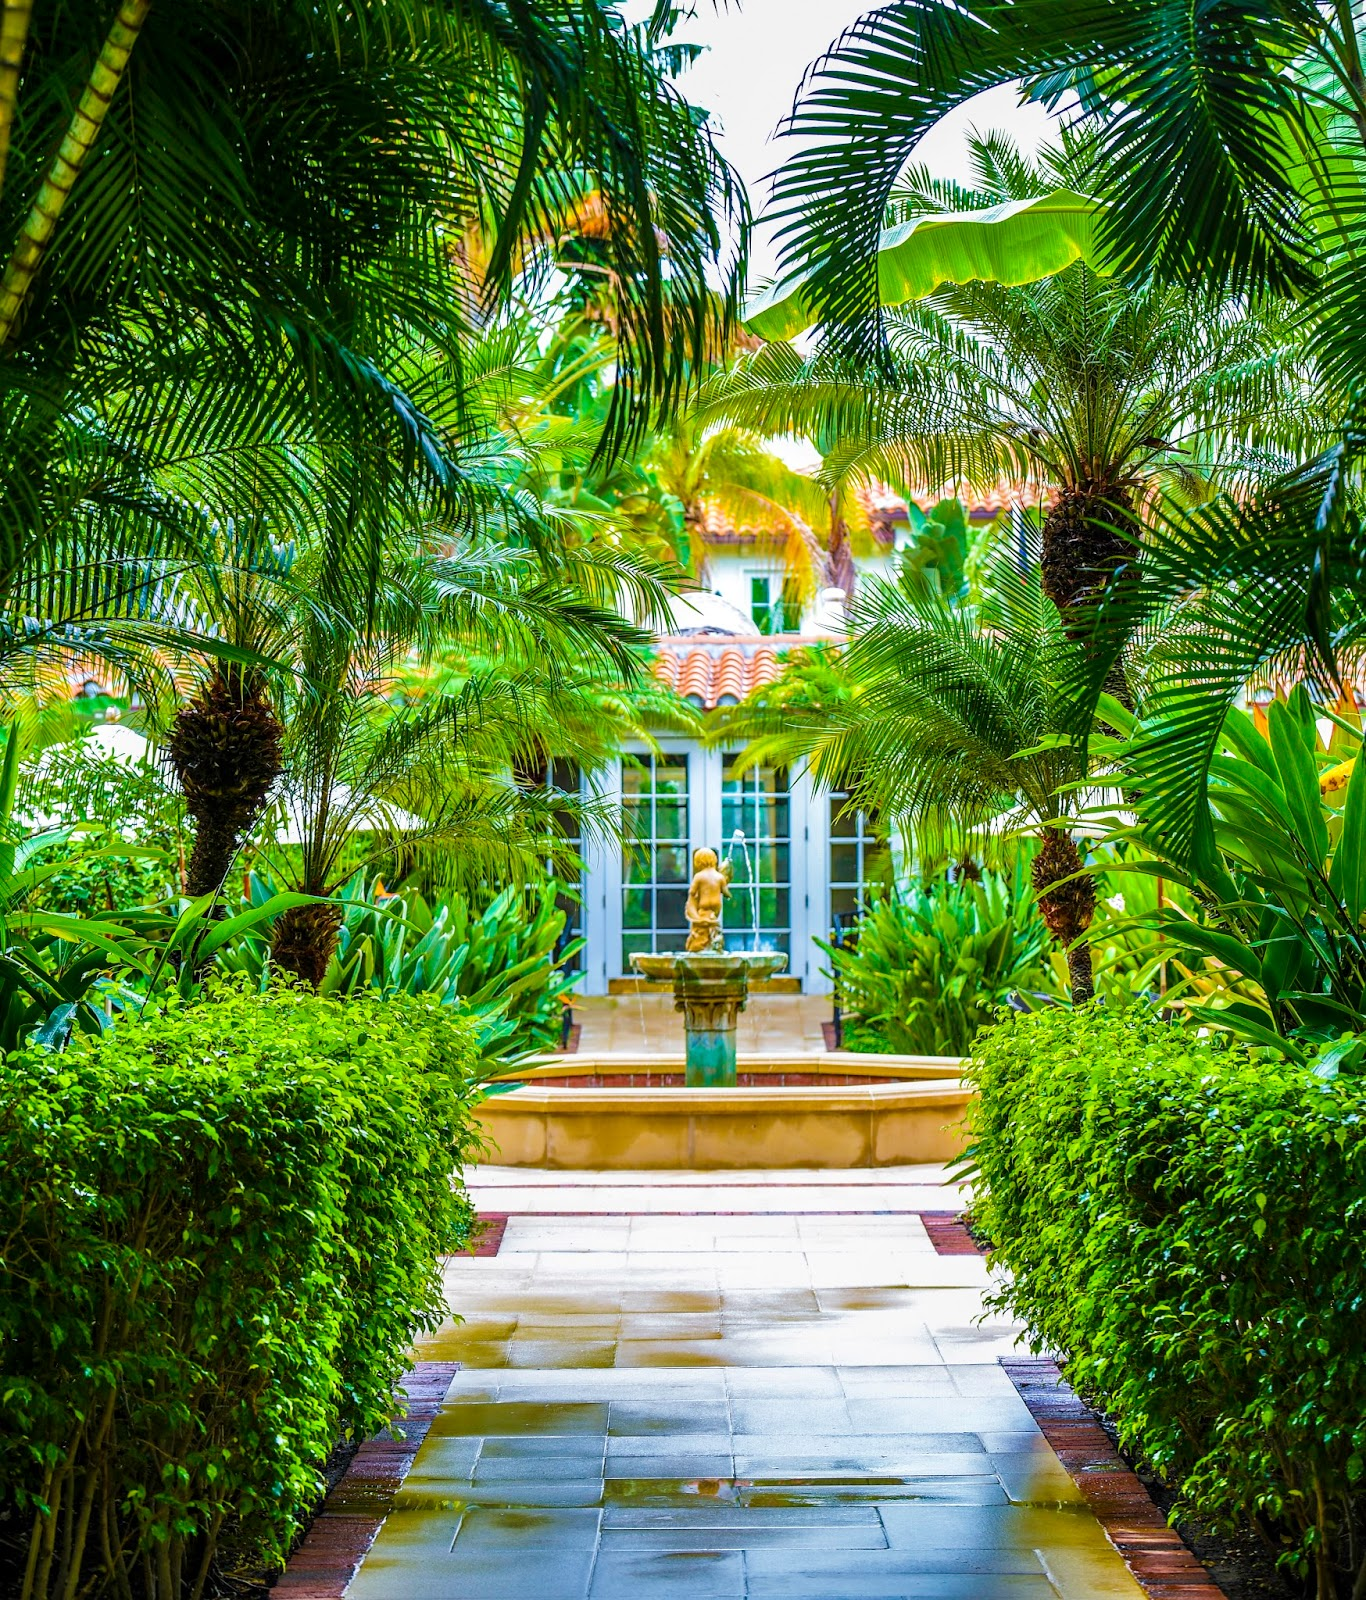 The Brazilian Court Palm Beach Celebrates 90 Years - The Glam Pad